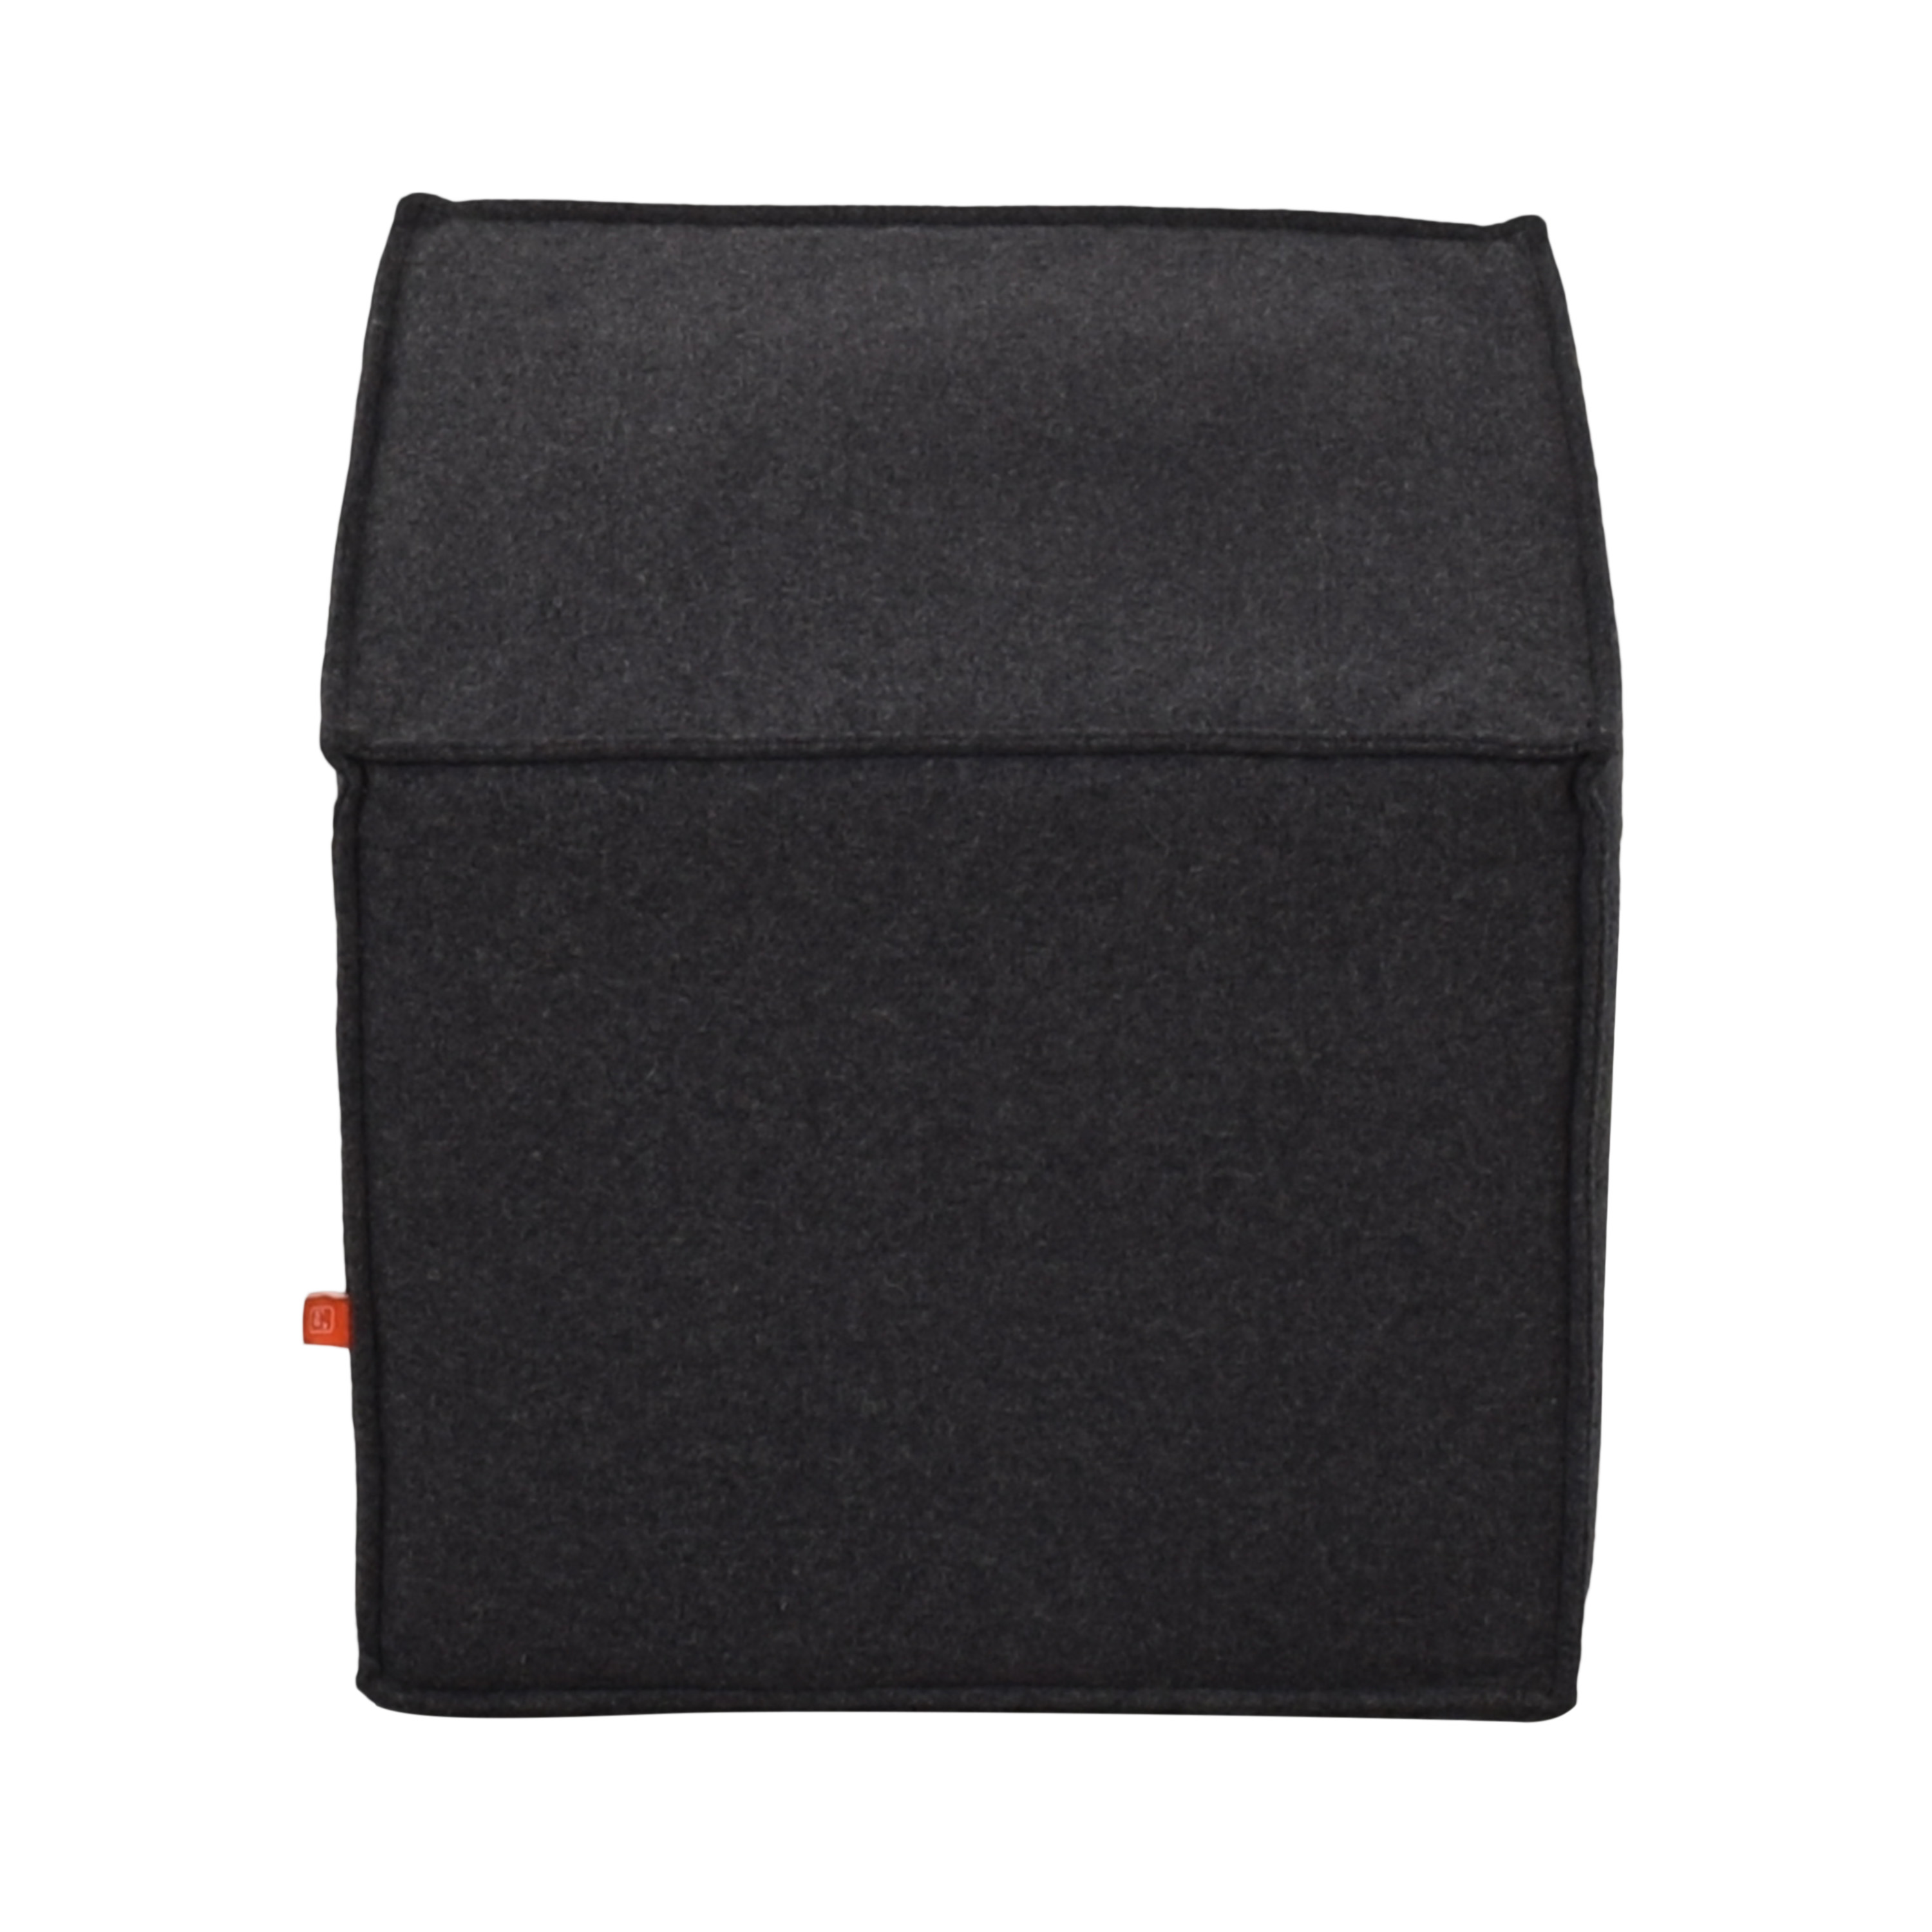 Gus Modern Gus Modern Upholstered Cube Ottoman or Stool discount